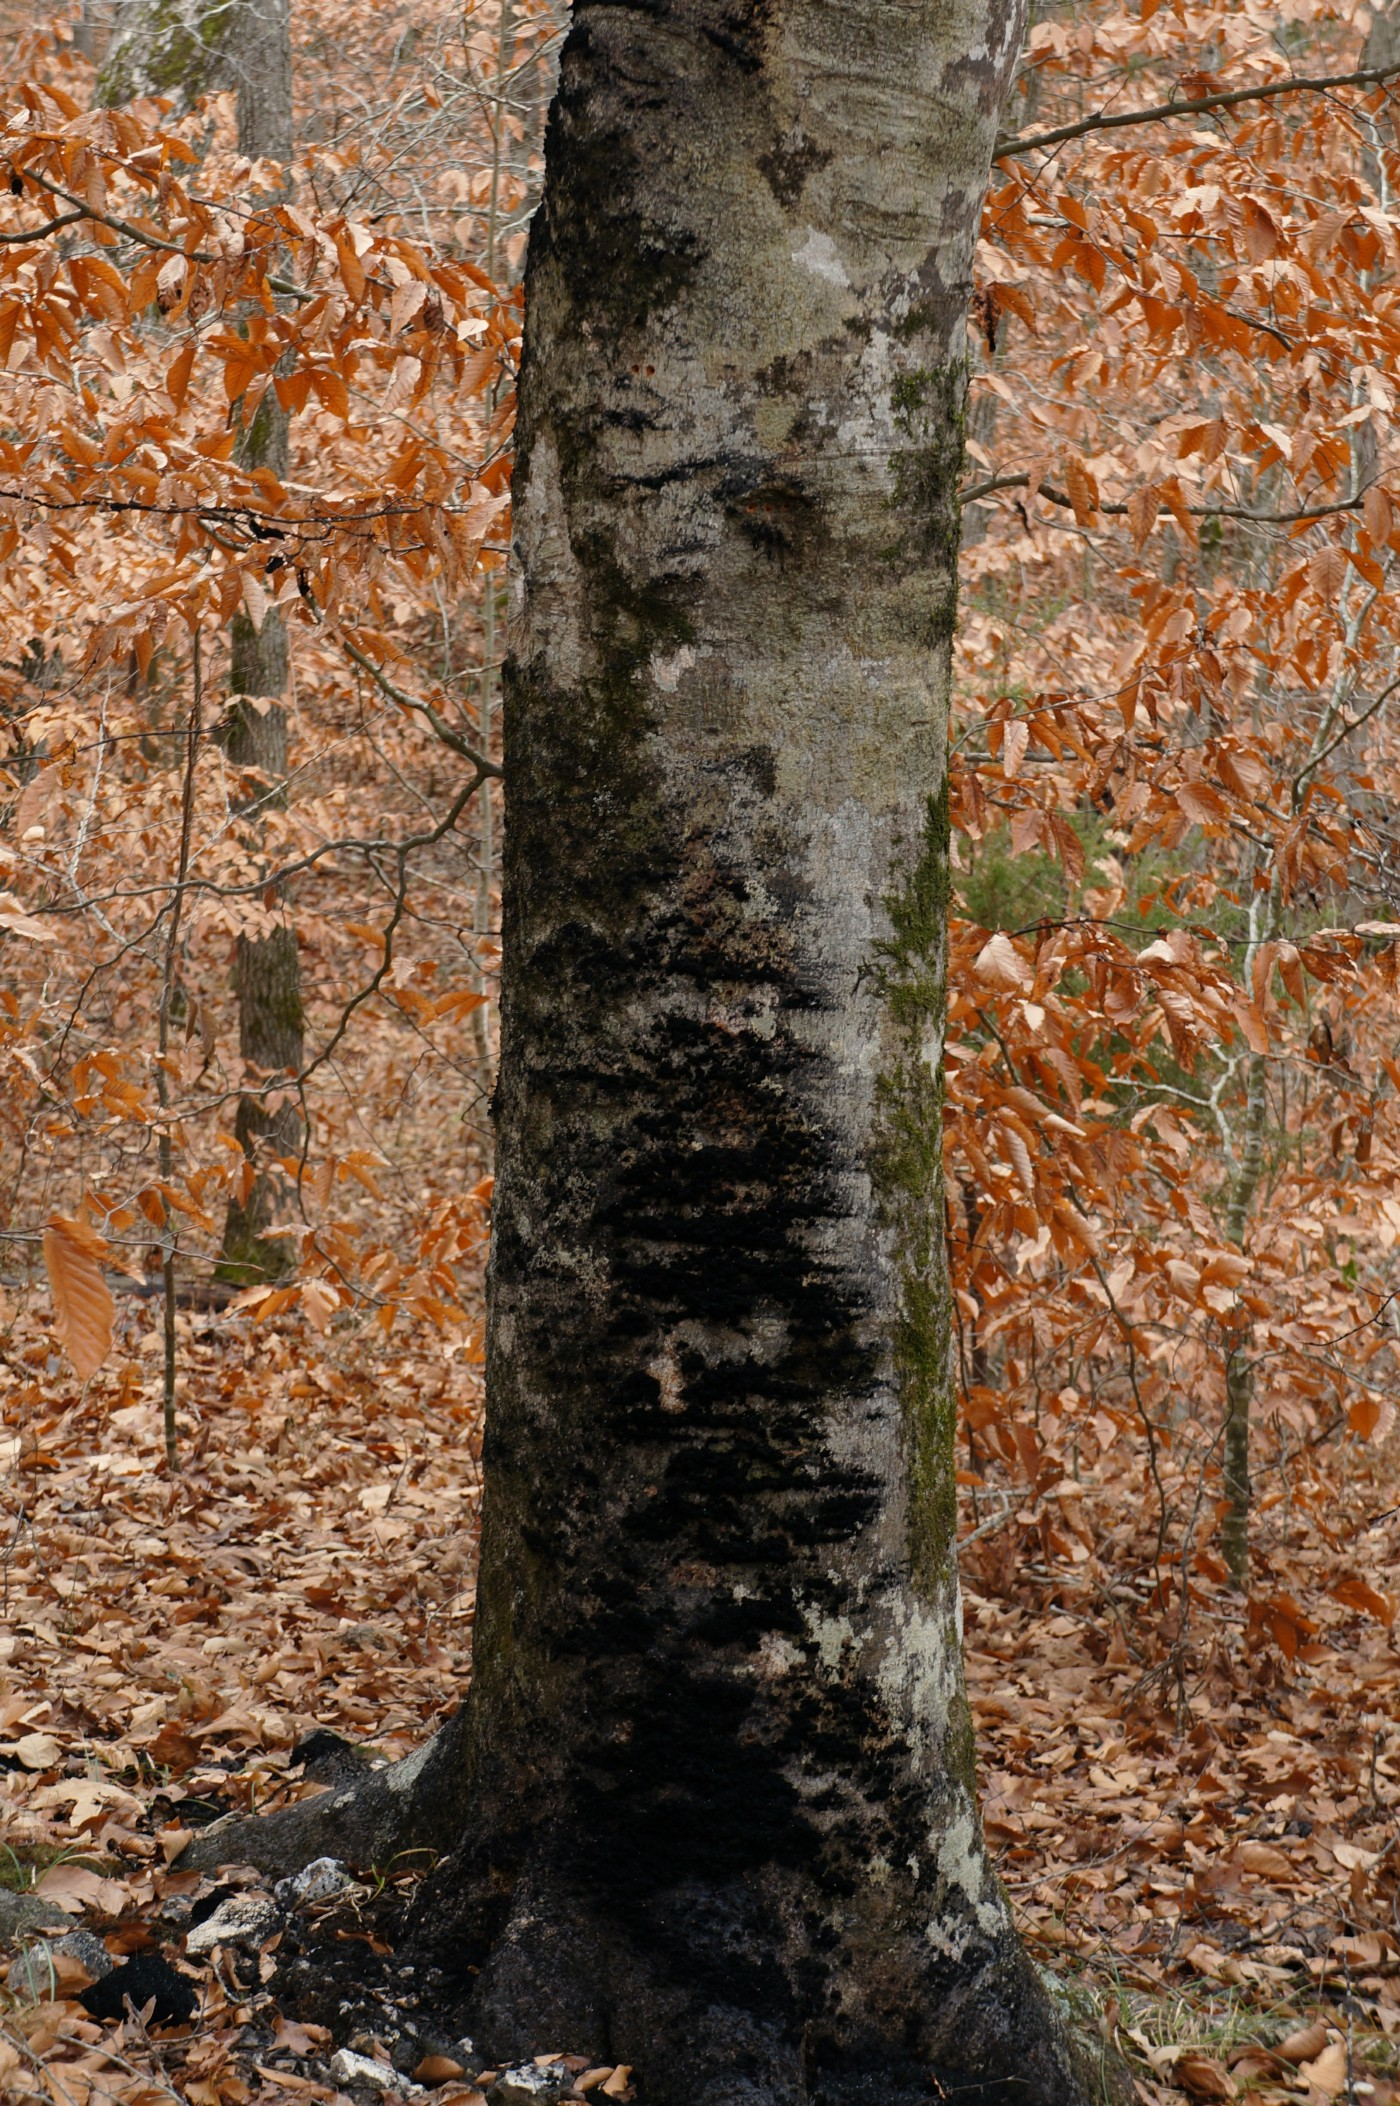 a large tree trunk with large patches of black sooty mold covering it